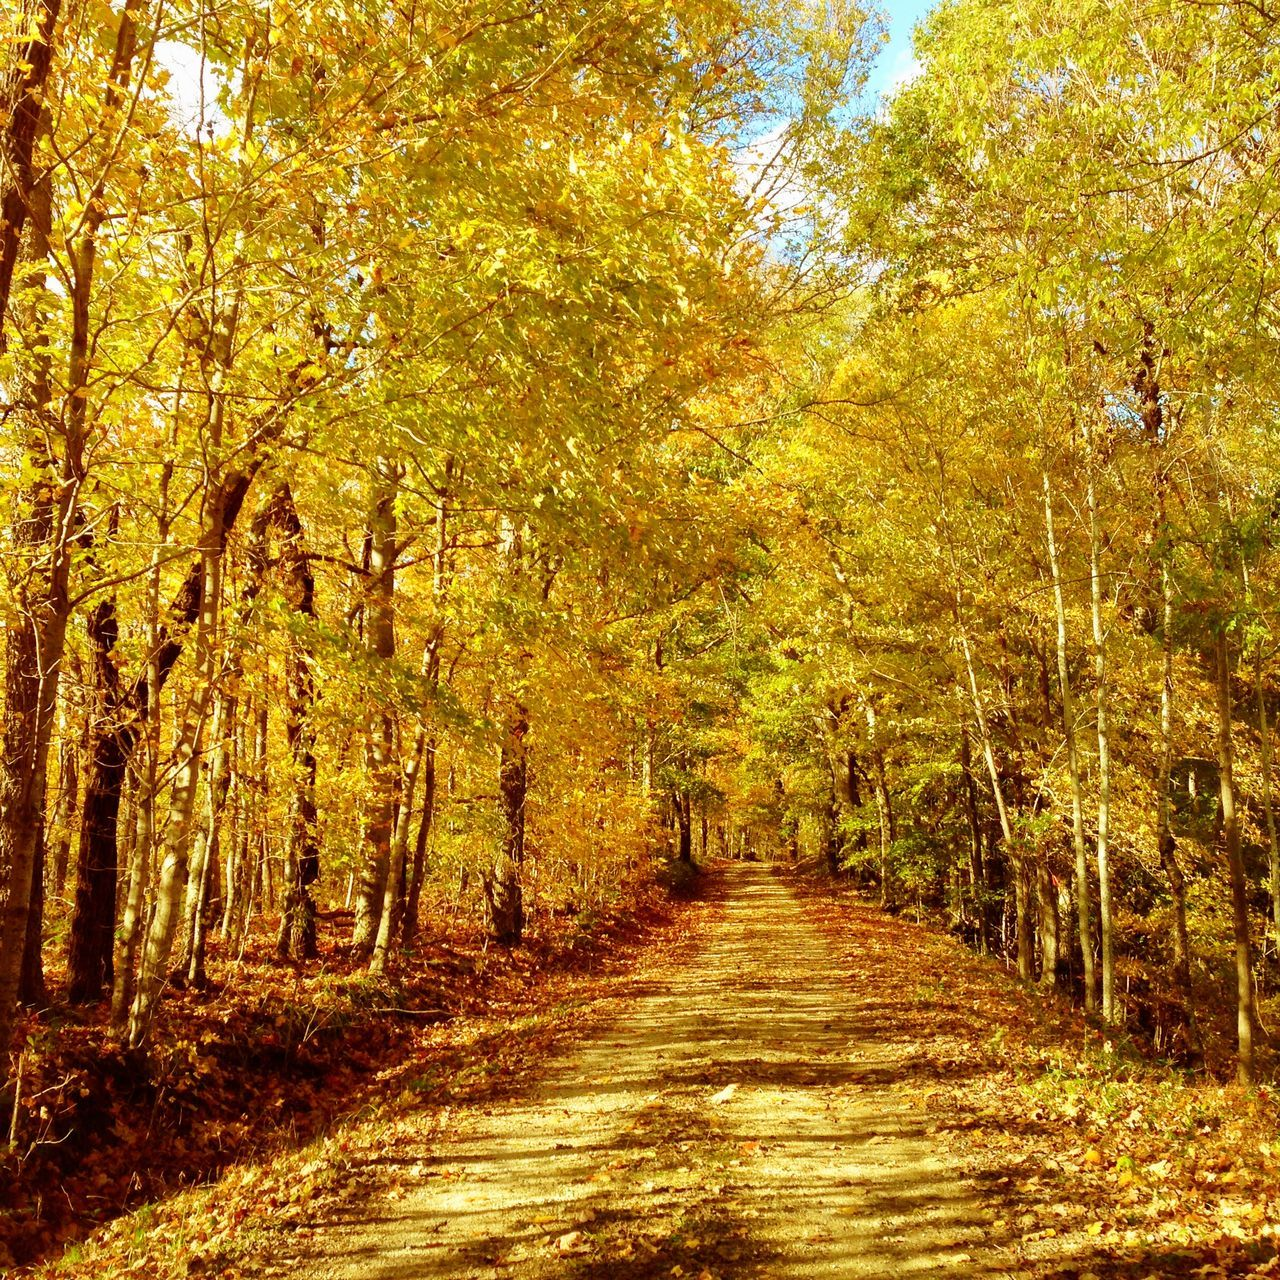 Happy Thanksgiving Happy Thanksgiving EyeEm Nature Lover EyeEm Best Shots Colors Of Autumn Vanishing Point Trees Dirt Road Rural Scenes Autumn Nature Beauty In Nature Yellow Color Yellow Leaves The Way Forward Tranquil Scene No People